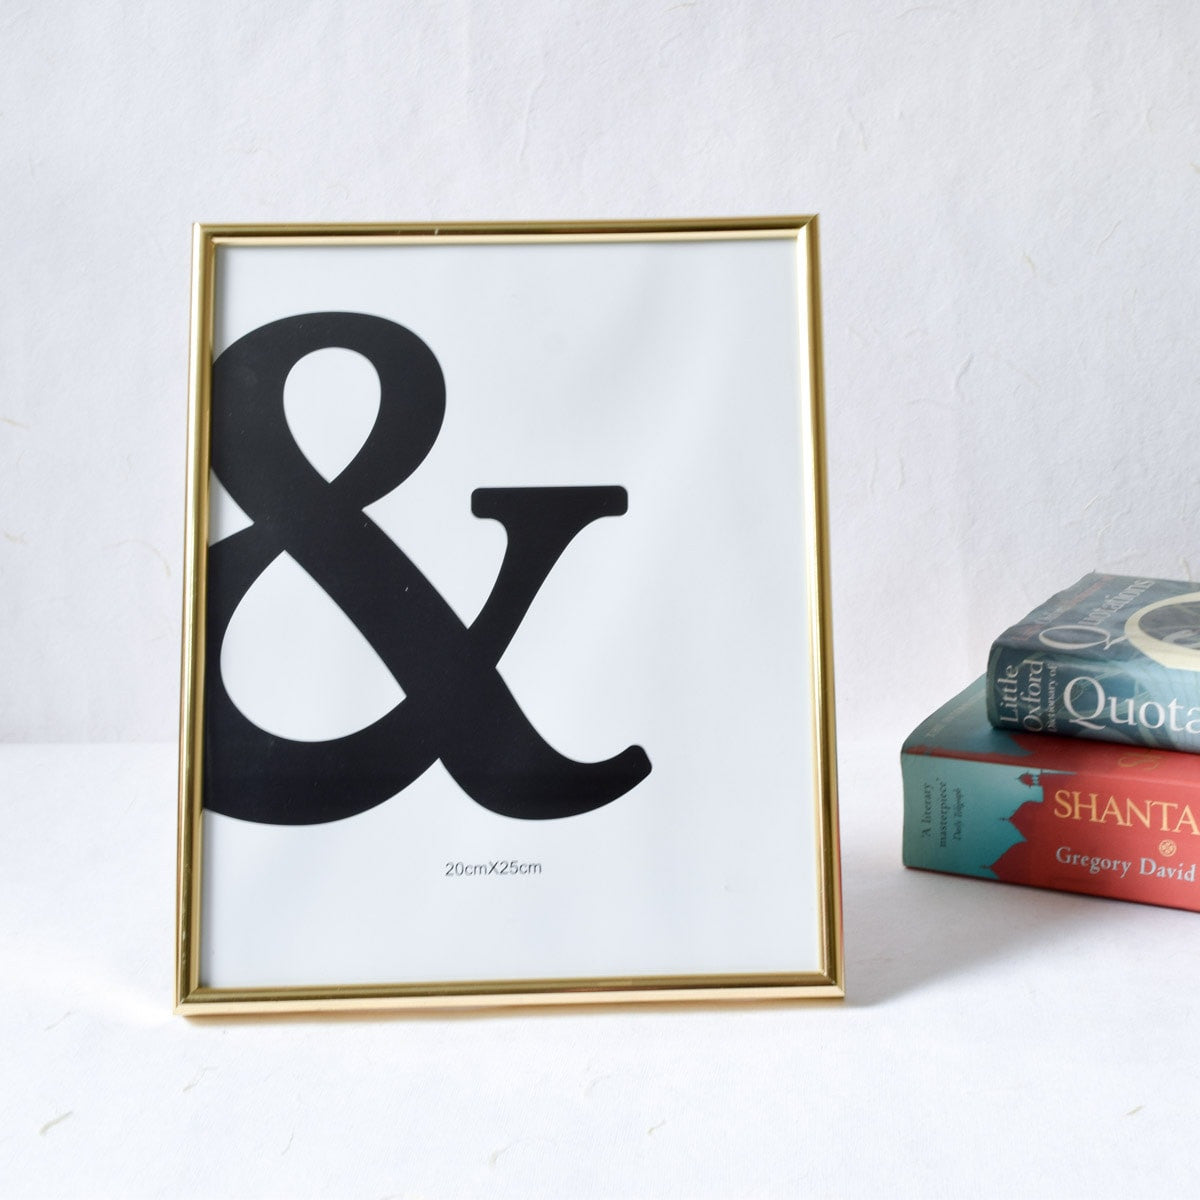 Minimal Golden Photo Frame (8x10) - Home Artisan_1